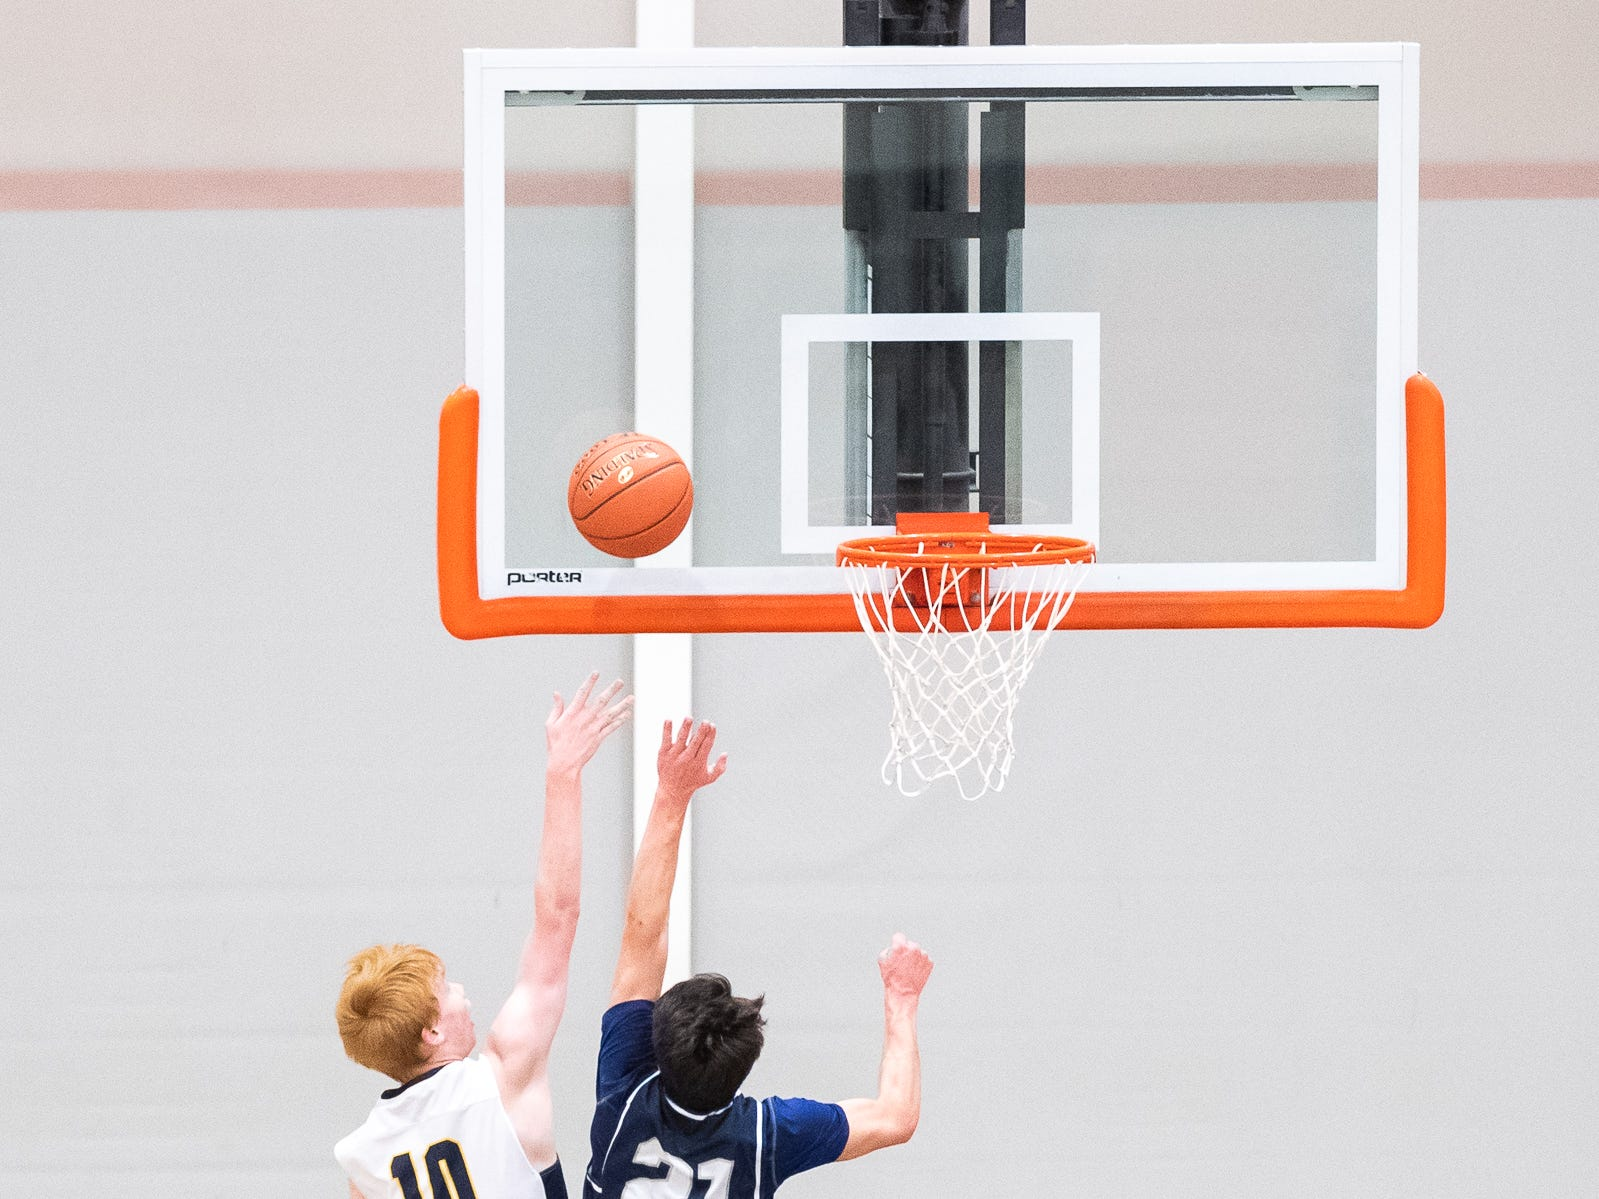 Littlestown's Daniel Gazmen (10) shoots while being guarded by West York's Jared Shearer (21) during the first half of the YAIAA boys' basketball quarterfinals between Littlestown and West York, Saturday, Feb. 9, 2019, at Central York High School. West York led Littlestown 33-31 at the half.